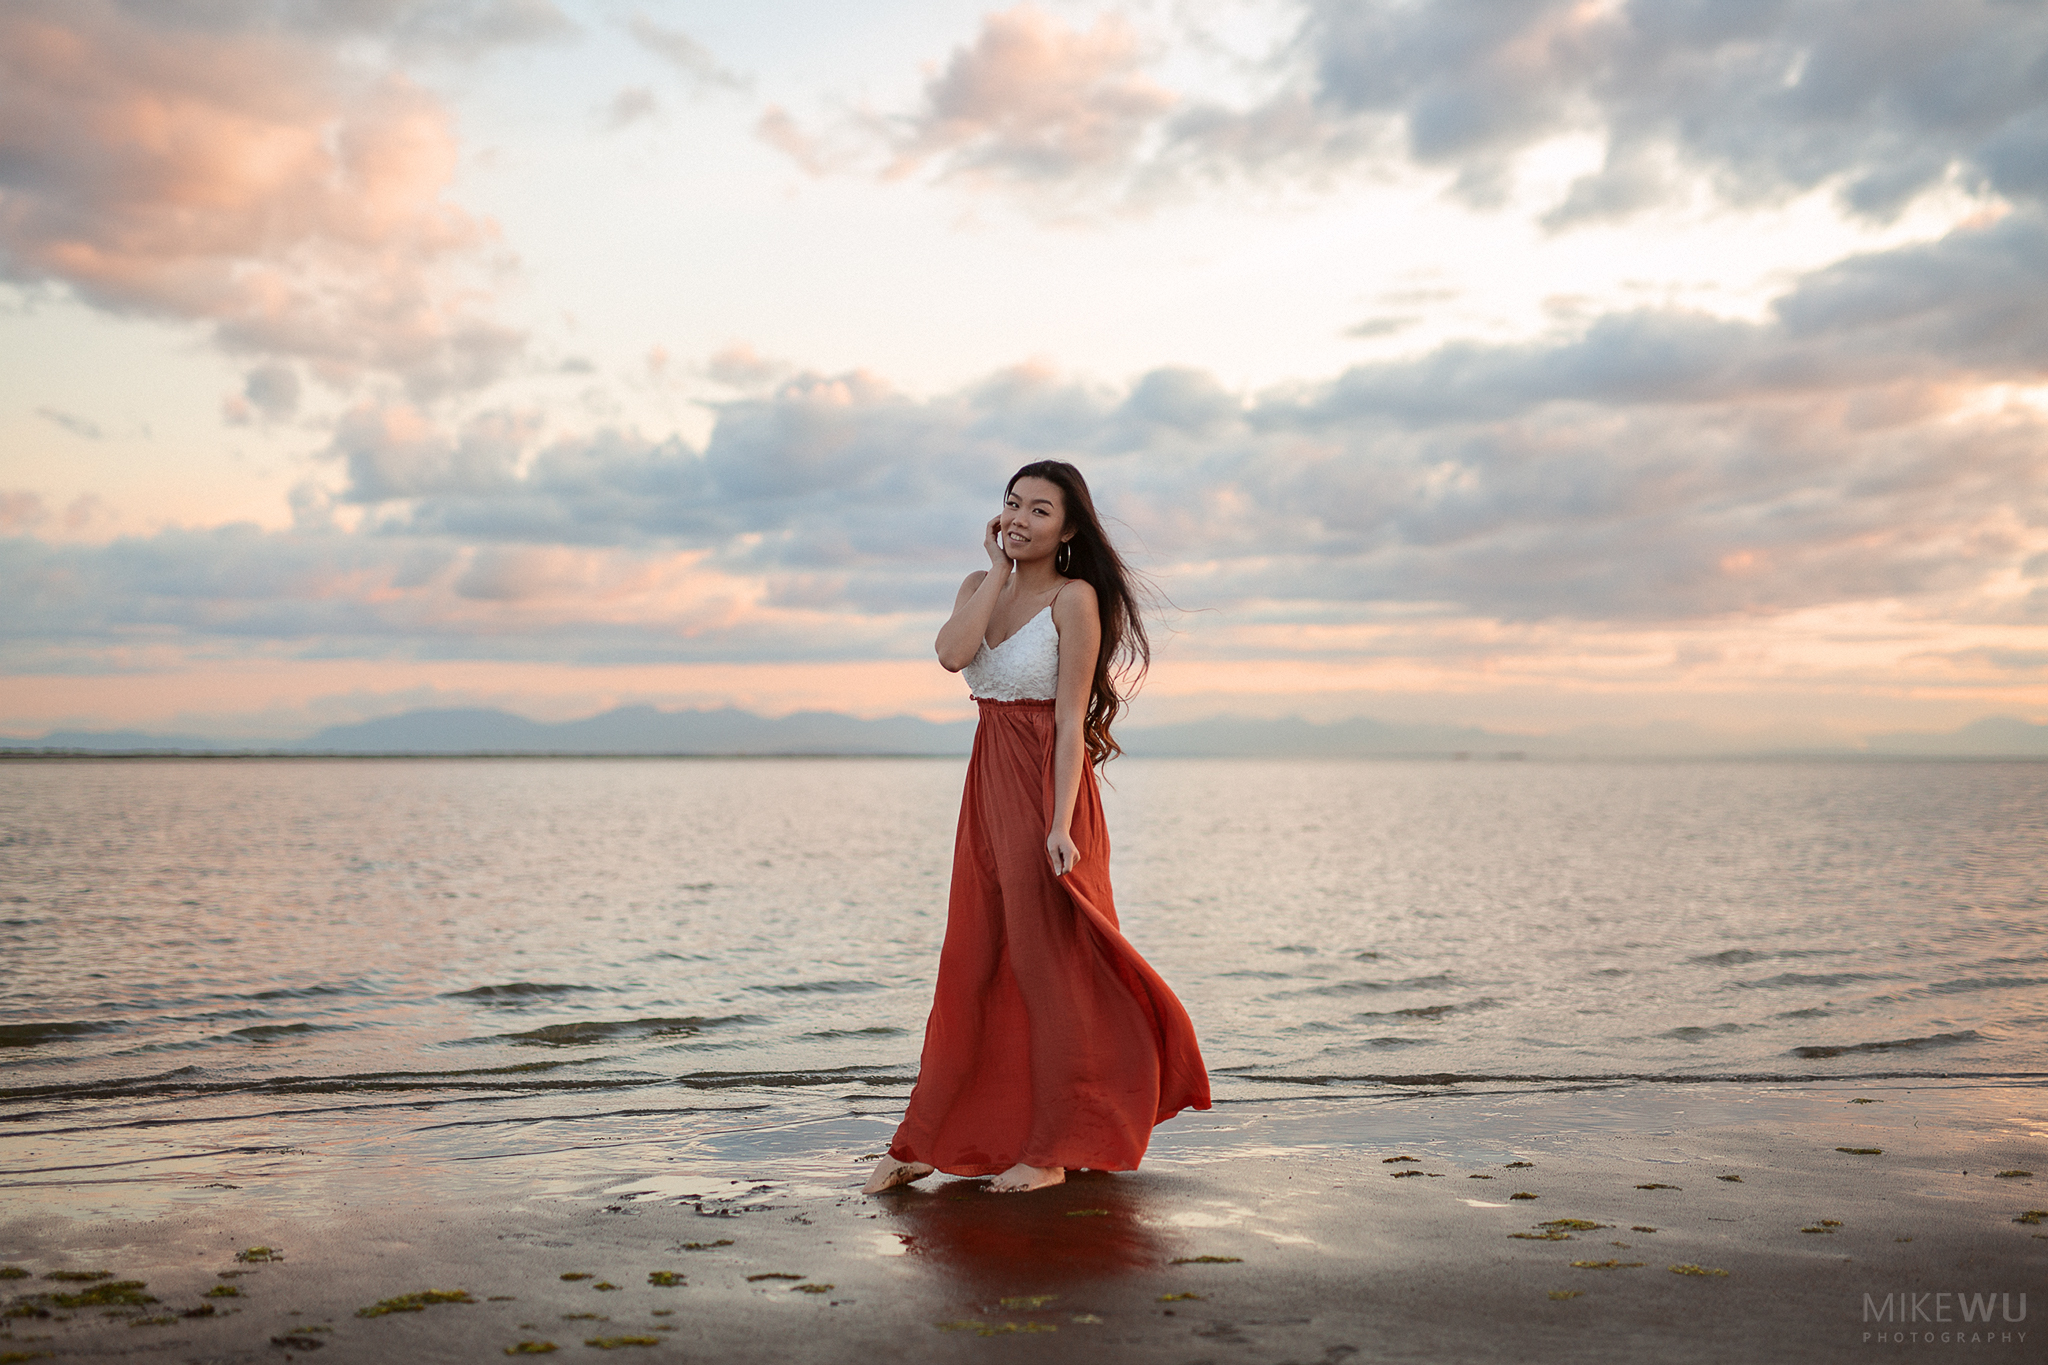 vancouver portrait photographer mike wu beach dress wind hair asian beauty beautiful sky waves water clouds sunset pink